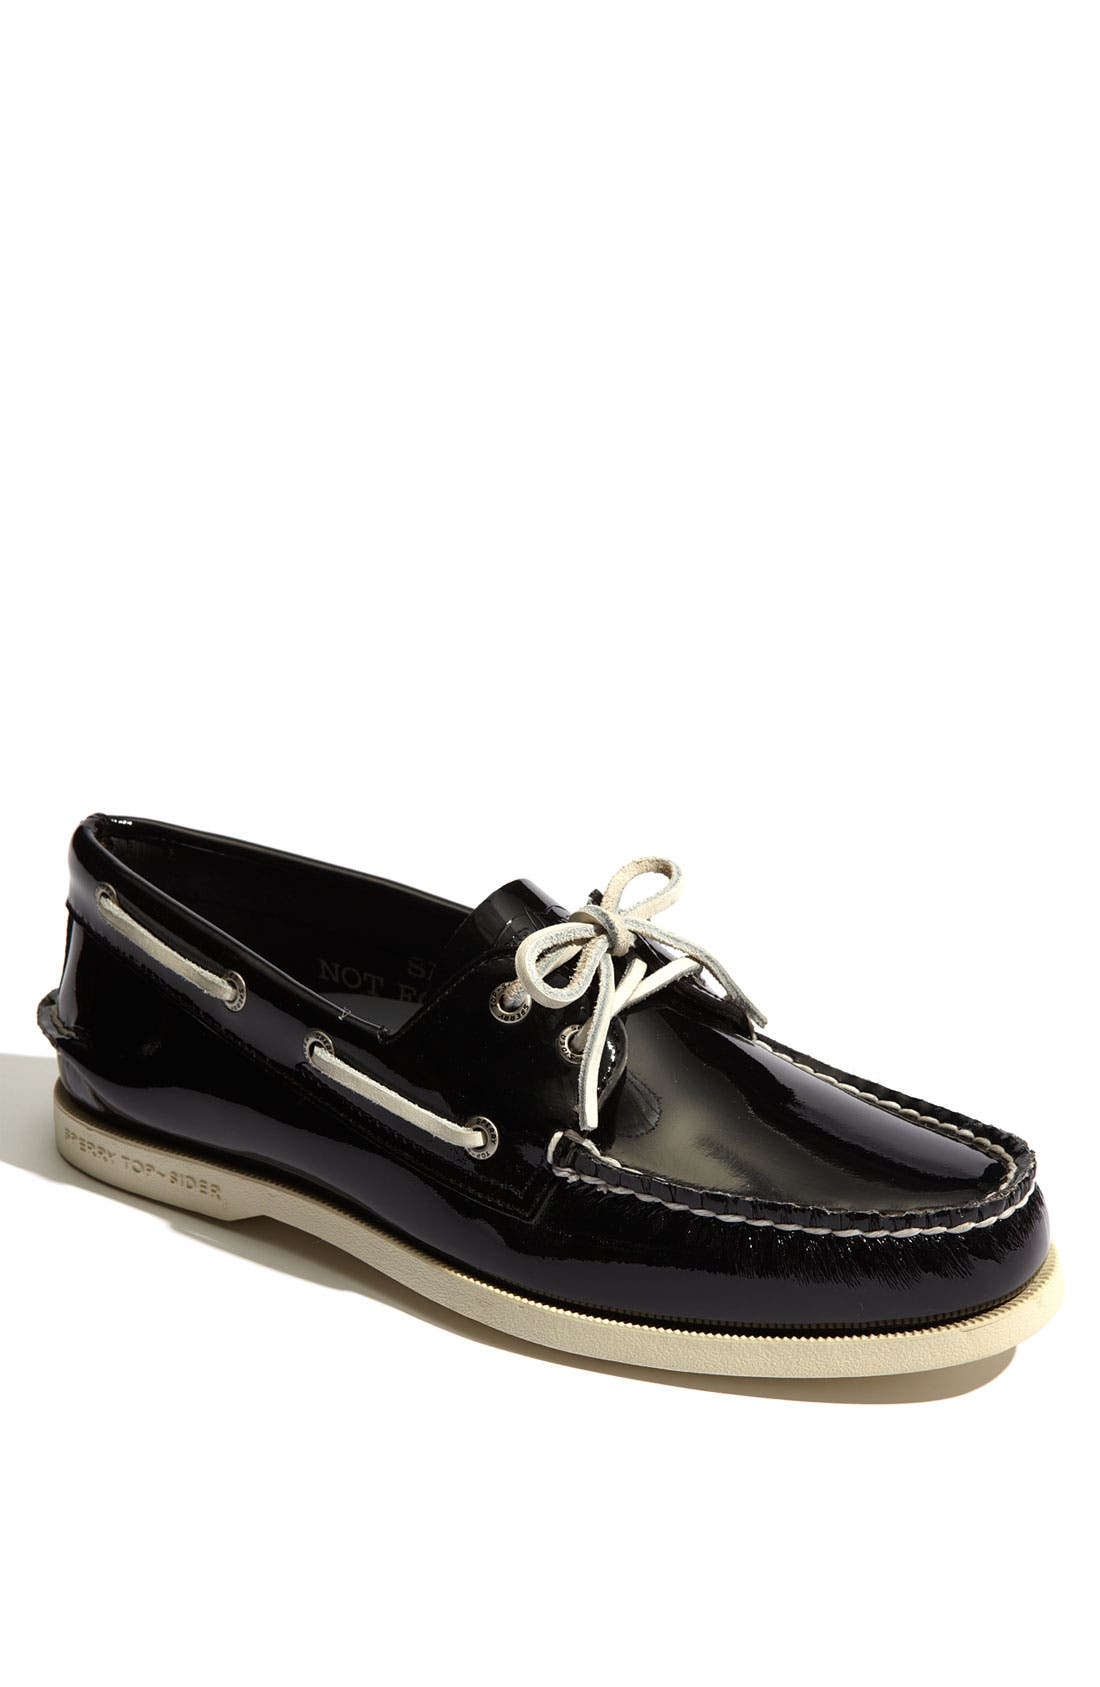 Alternate Image 1 Selected - Sperry Top-Sider® 'Authentic Original' Patent Leather Boat Shoe